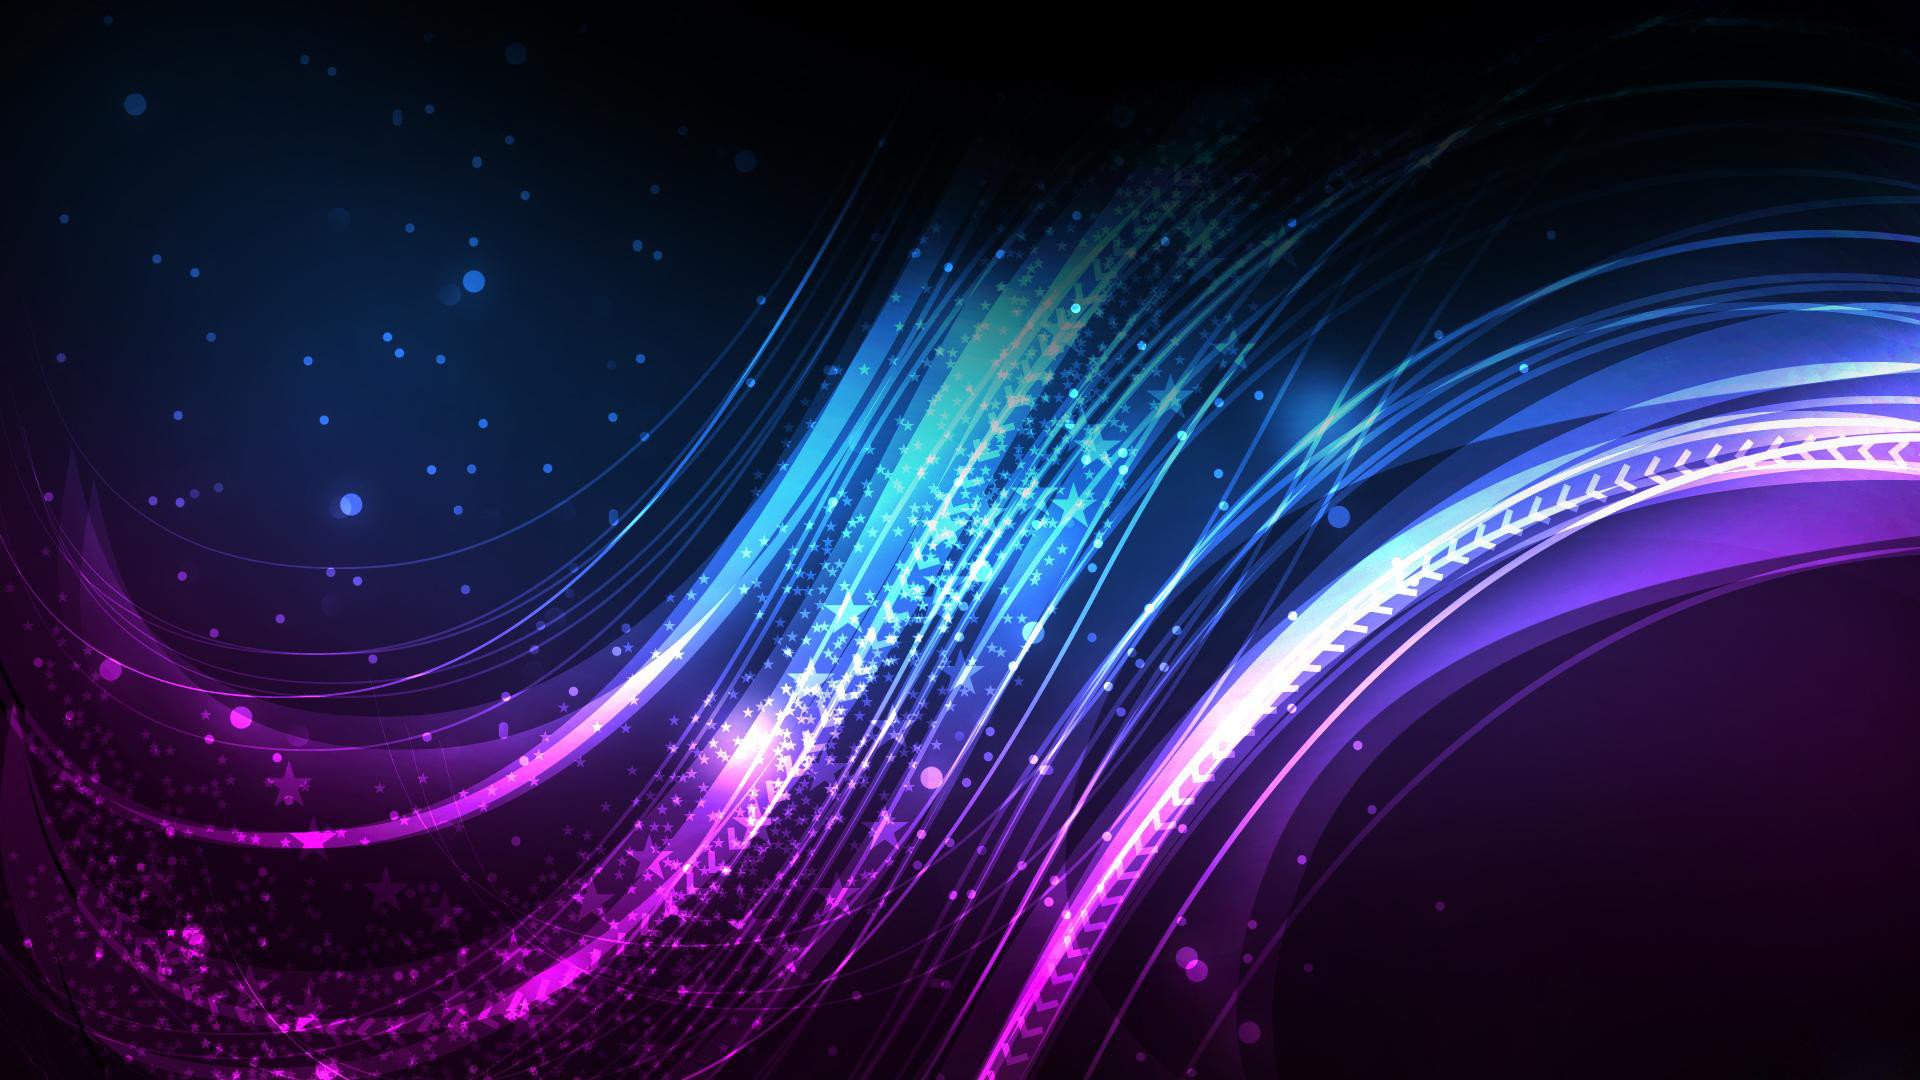 1920x1080 background abstract images hd 1080p 10